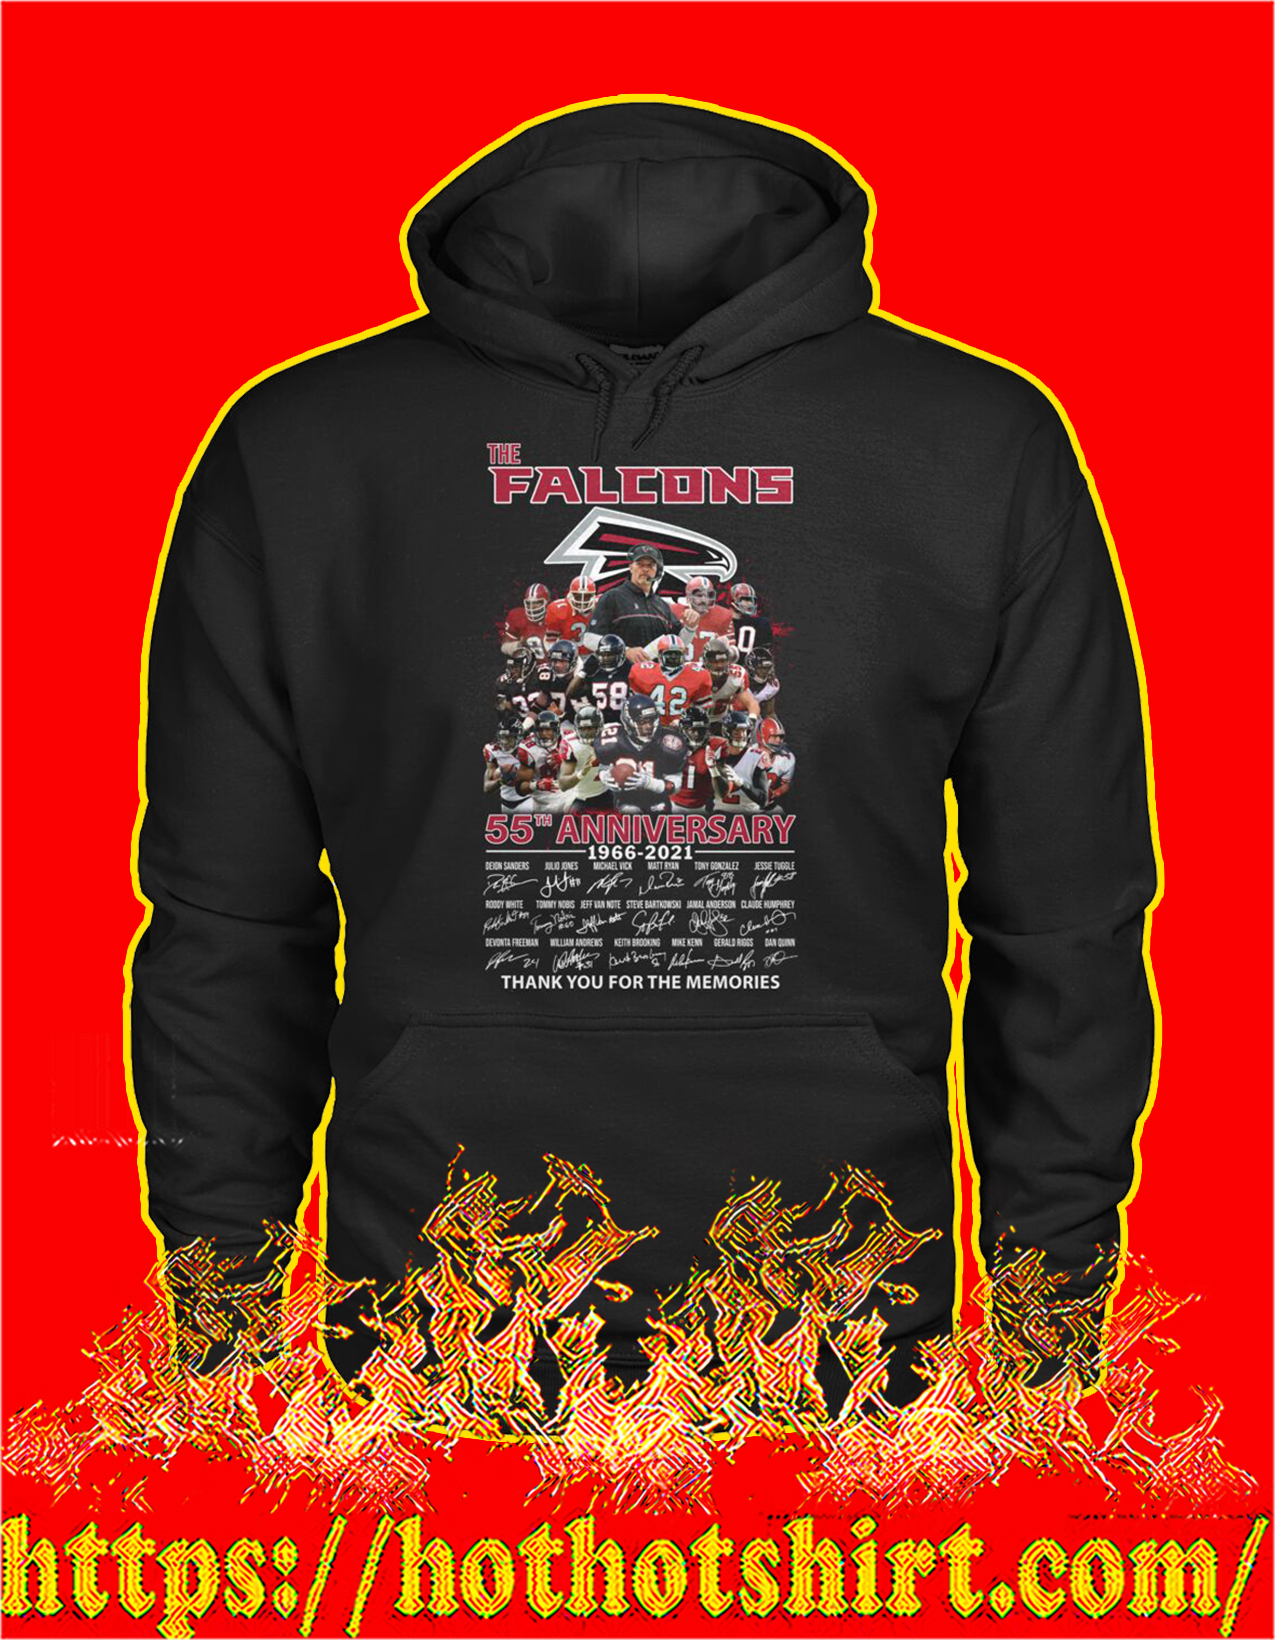 The falcons 55th anniversary thank you for the memories hoodie